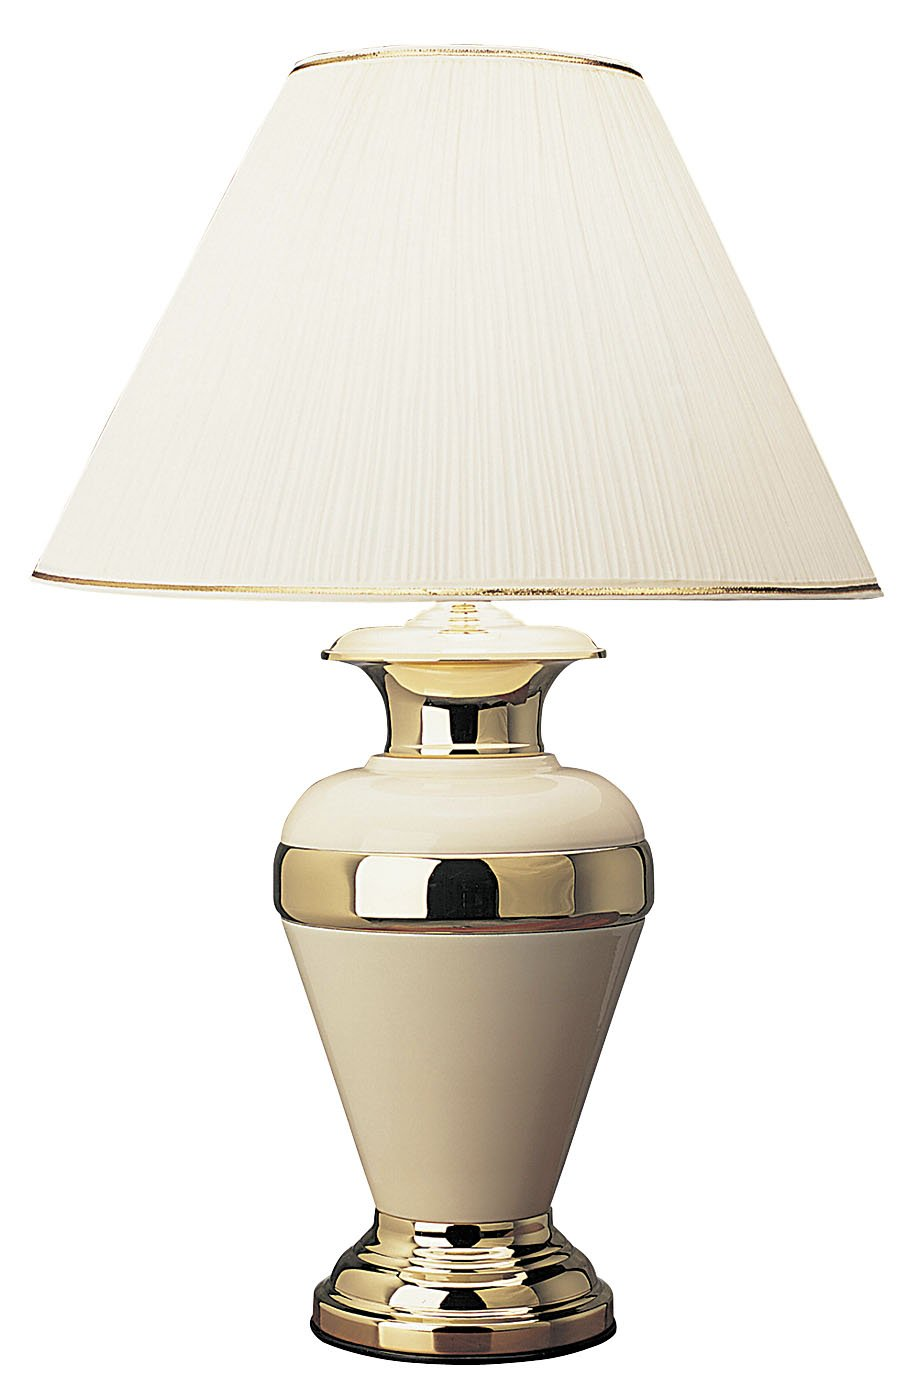 Ore international 6129iv 32 inch metal lamp ivory table lamps ore international 6129iv 32 inch metal lamp ivory table lamps amazon geotapseo Image collections